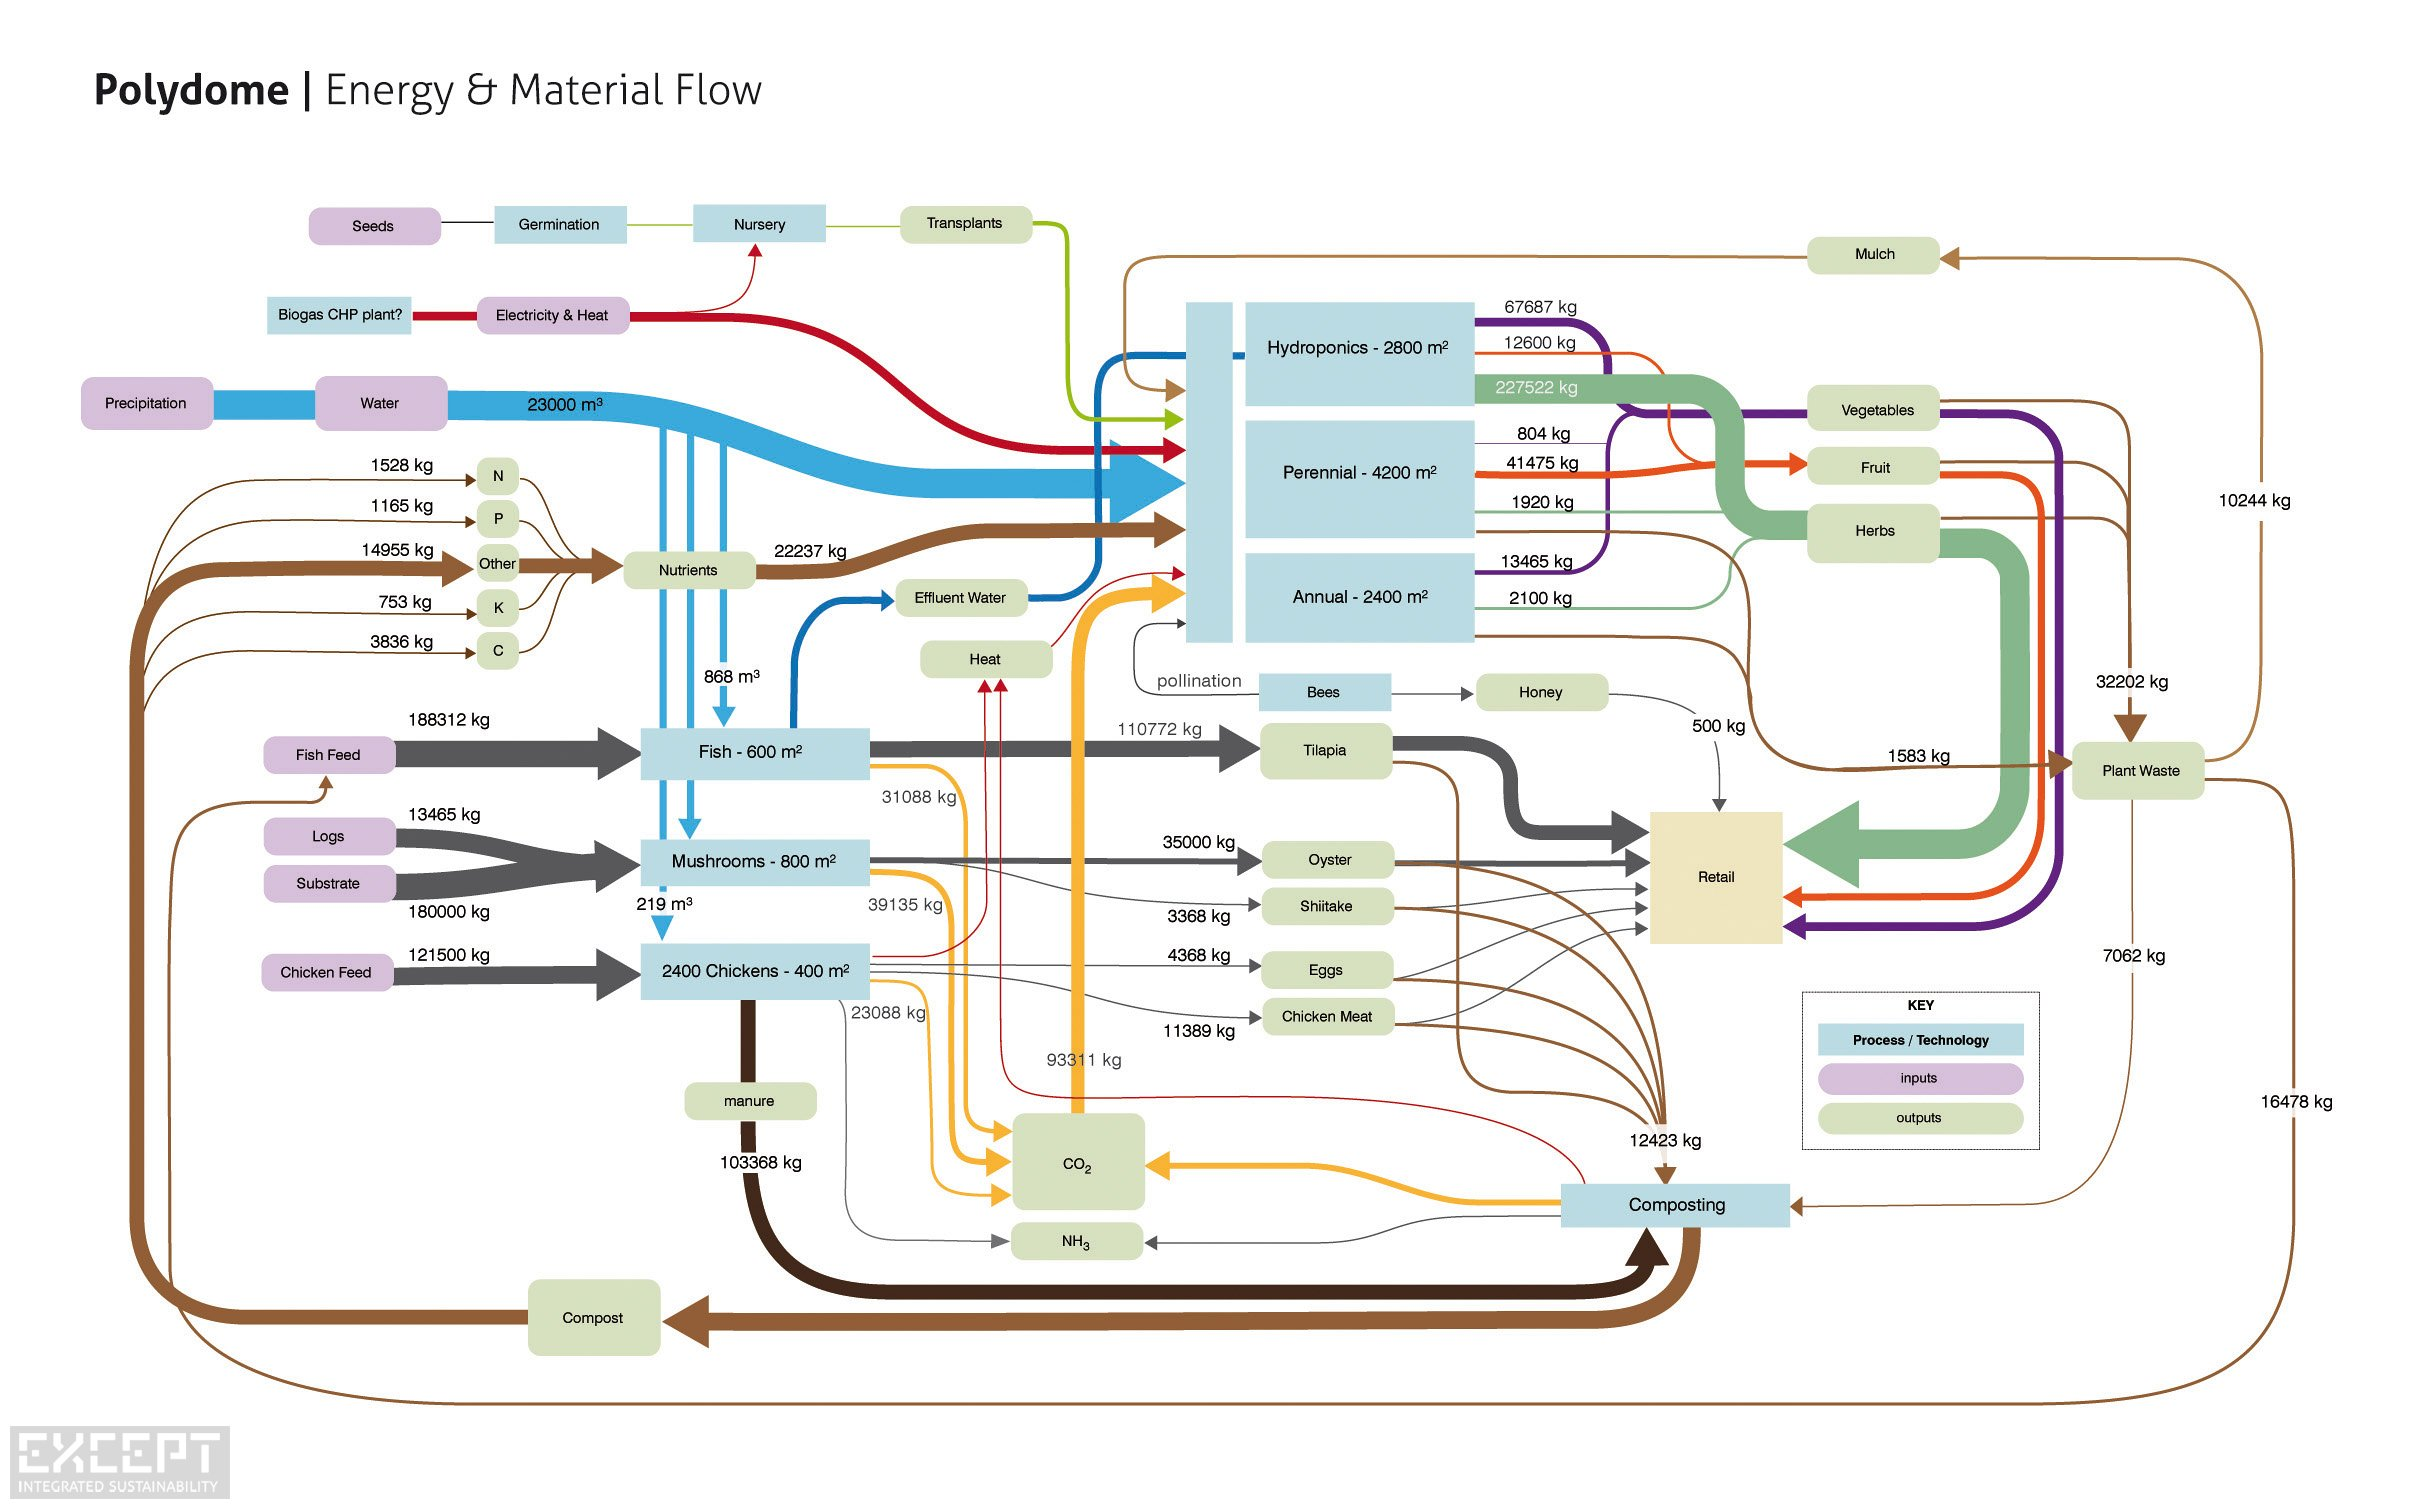 System Map Energy Material Flow Polydome - System map showing the energy and material flow in an agricultural system.